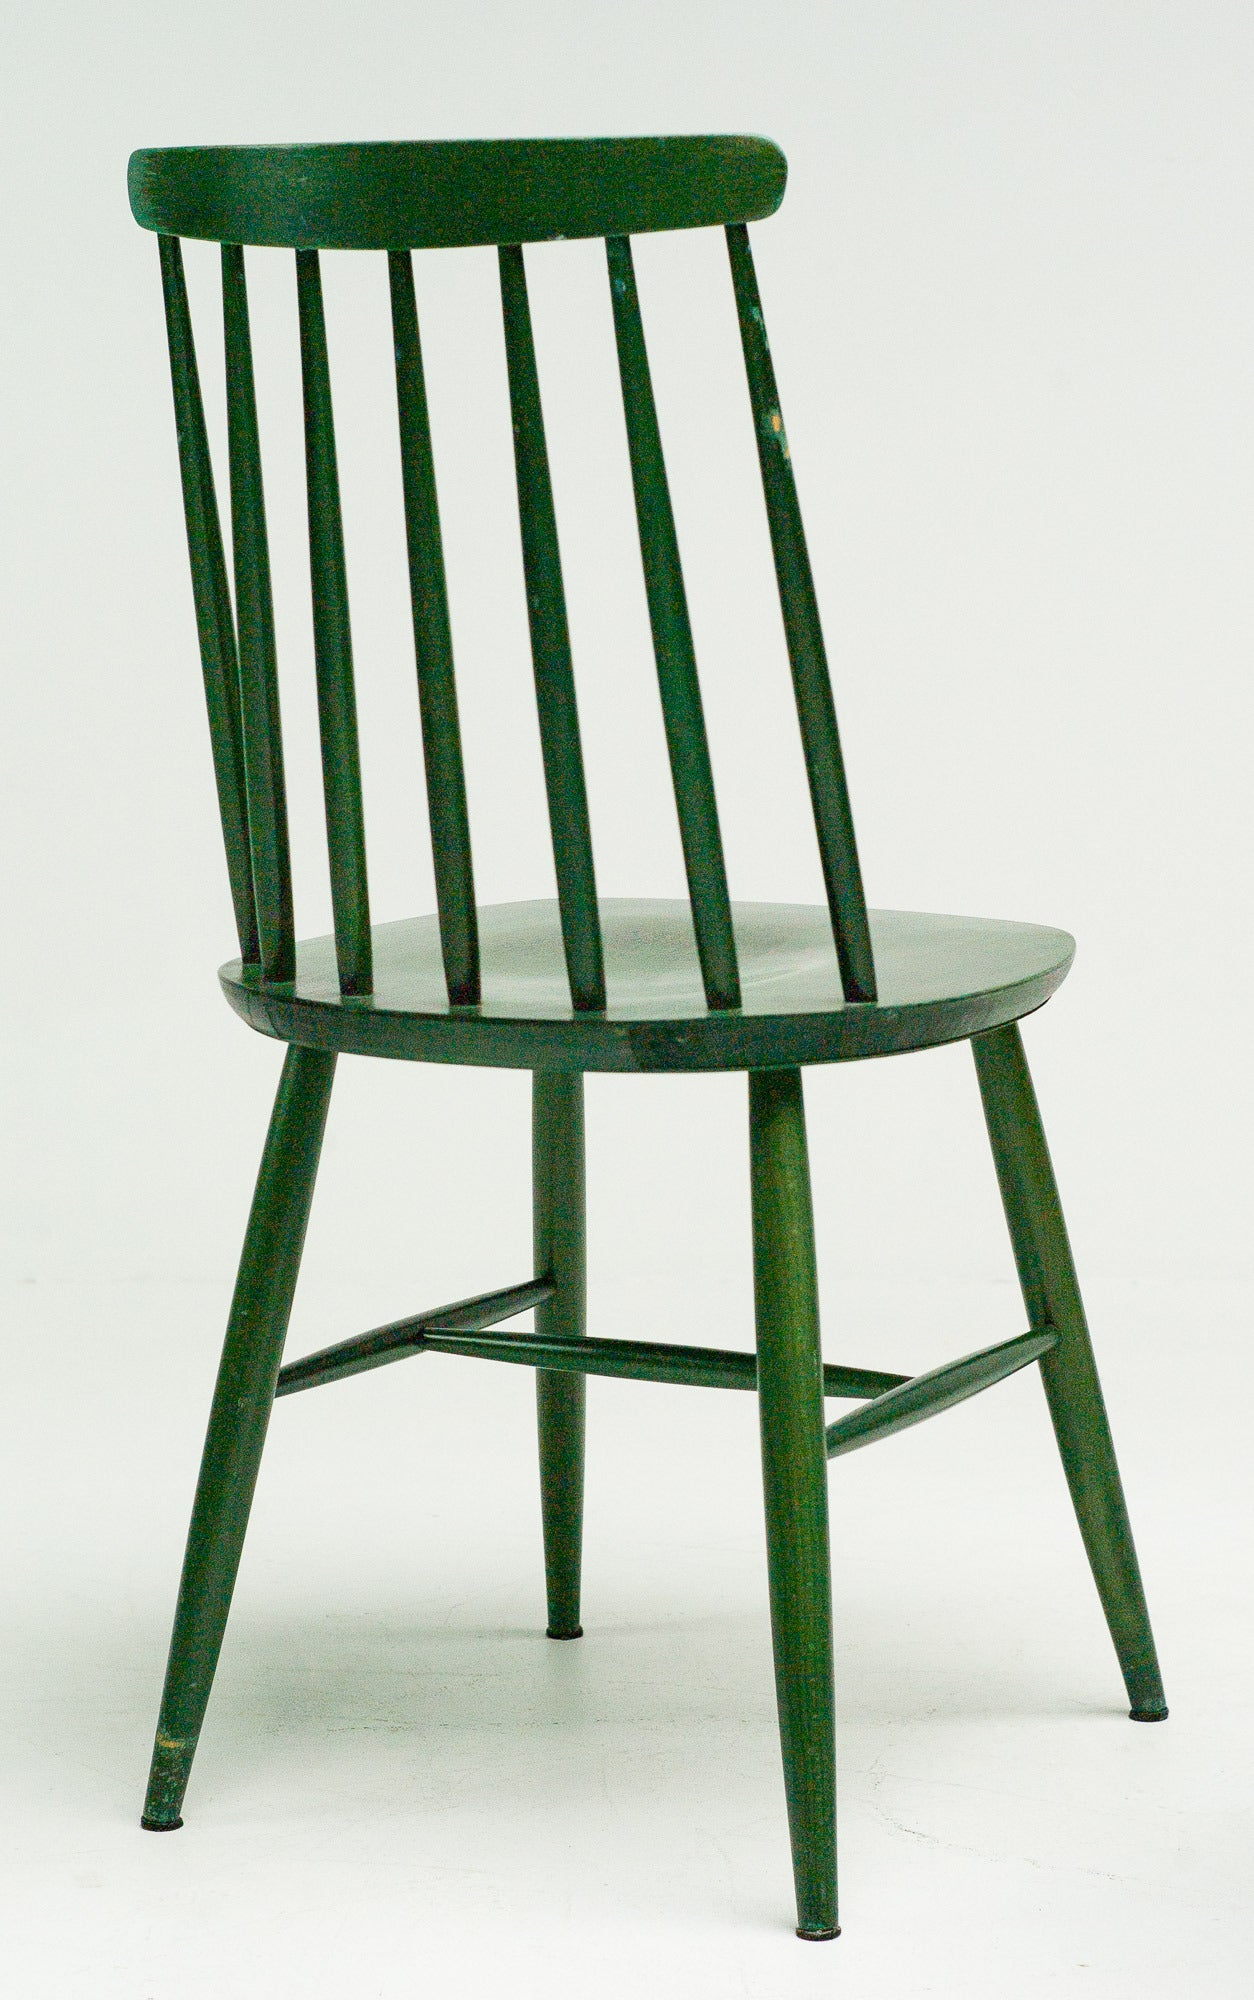 Pair of green dye spindle back dining chairs by Ilmari Tapiovaara.  Excellent fast and affordable worldwide shipping. White glove delivery available upon request.